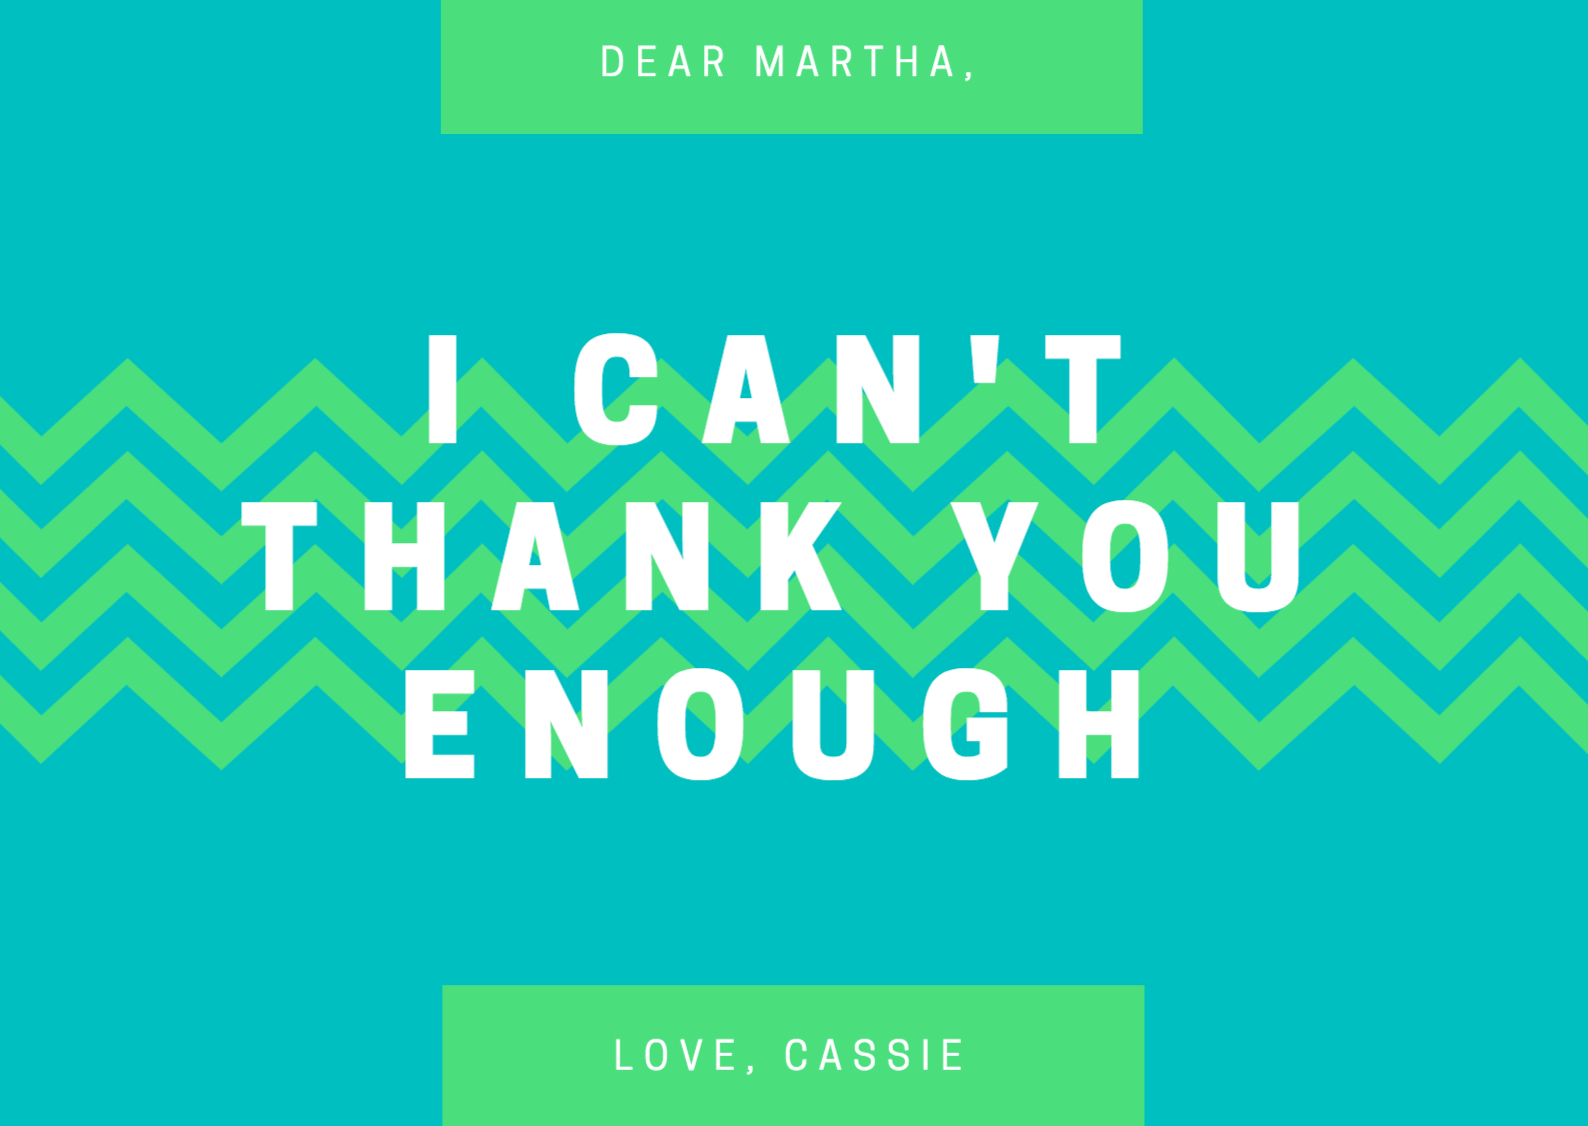 Design A Custom Thank You Card - Canva - Free Printable Custom Thank You Cards